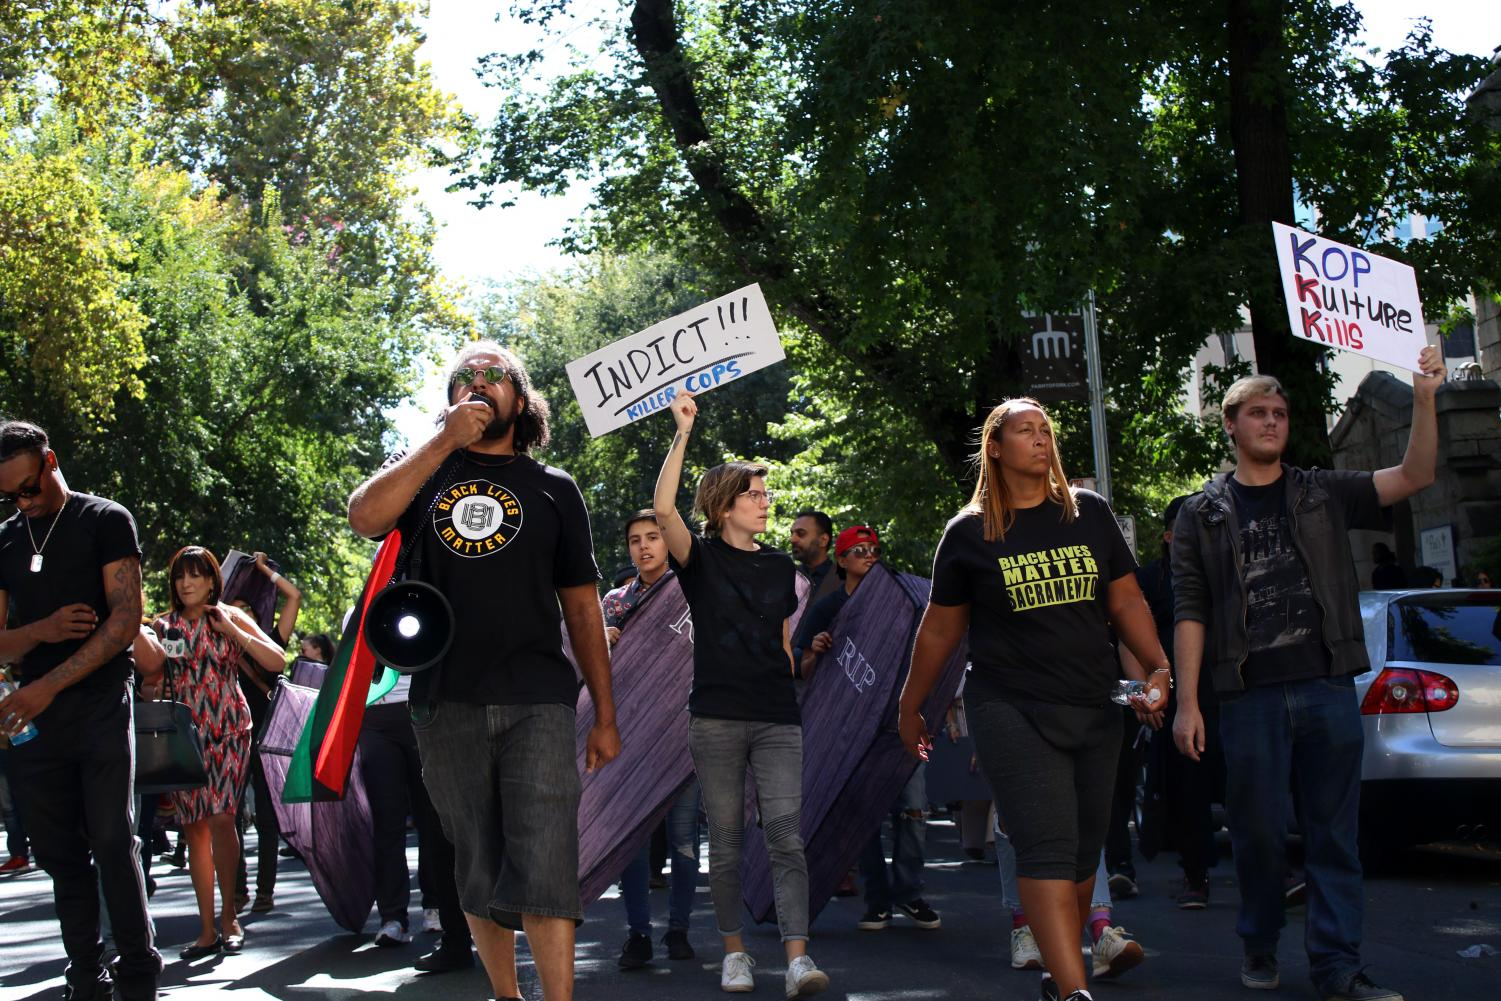 Keyan+Bliss+%28far+left%29+leads+chants+as+protestors+march+in+downtown+Sacramento+on+Tuesday%2C+Sept.+18.+The+protest+was+held+to+express+dismay+towards+law+enforcement.